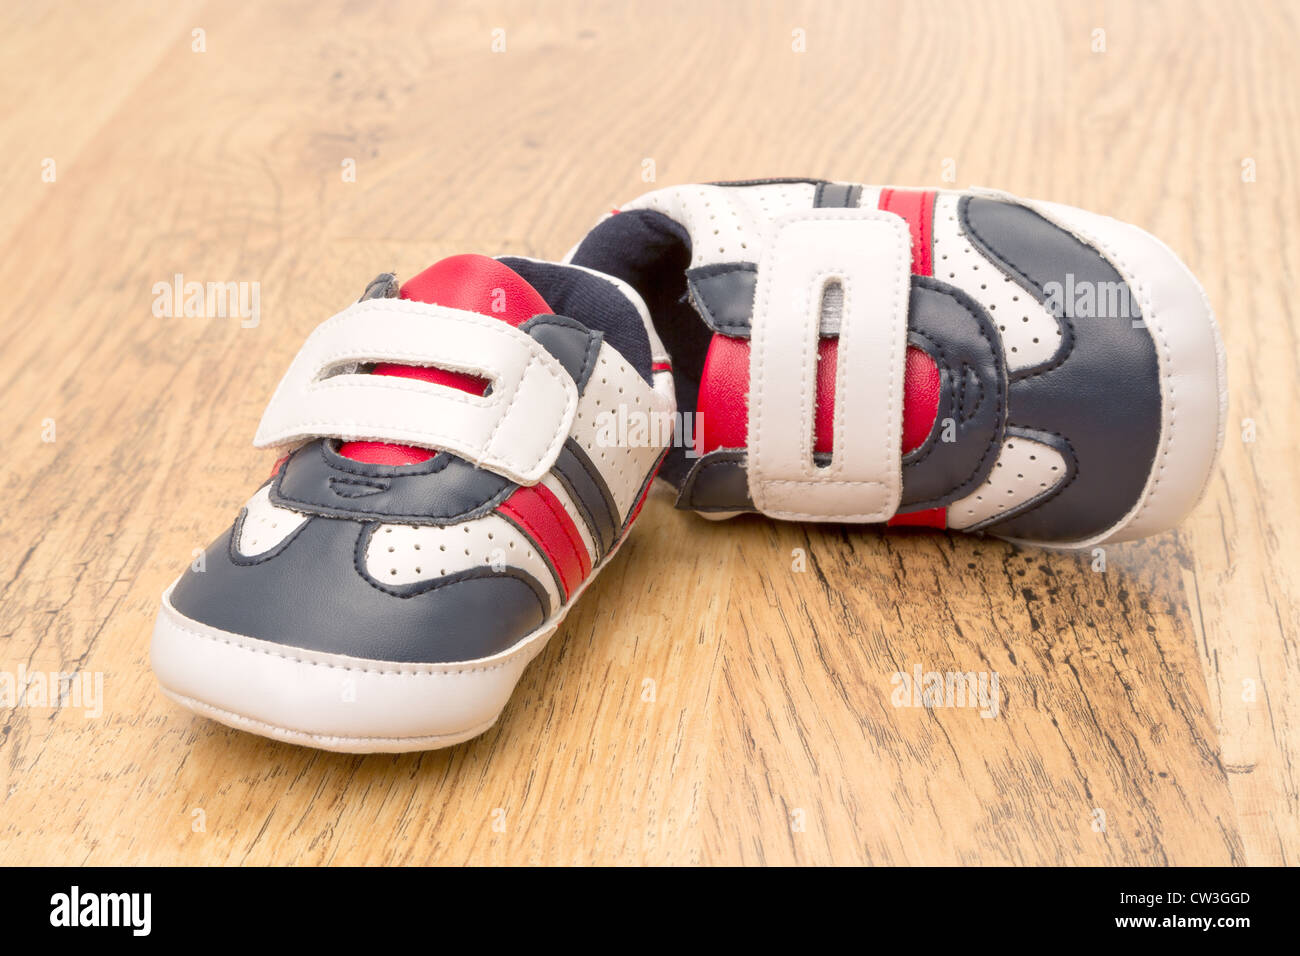 A pair of childs sports shoes - Stock Image